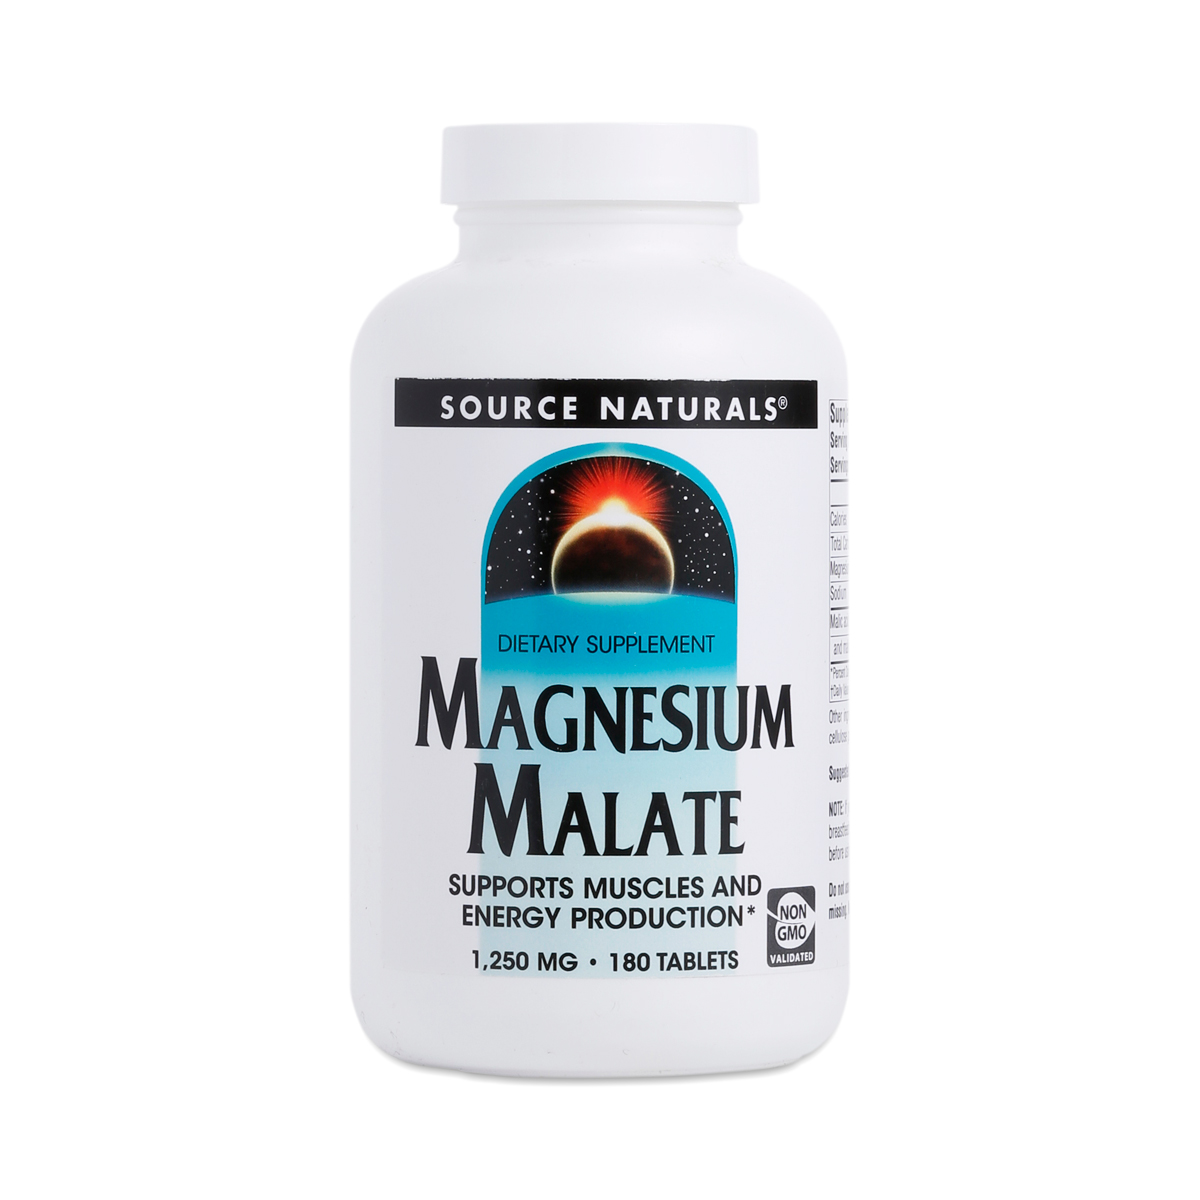 Magnesium Malate Supplement By Source Naturals Thrive Market